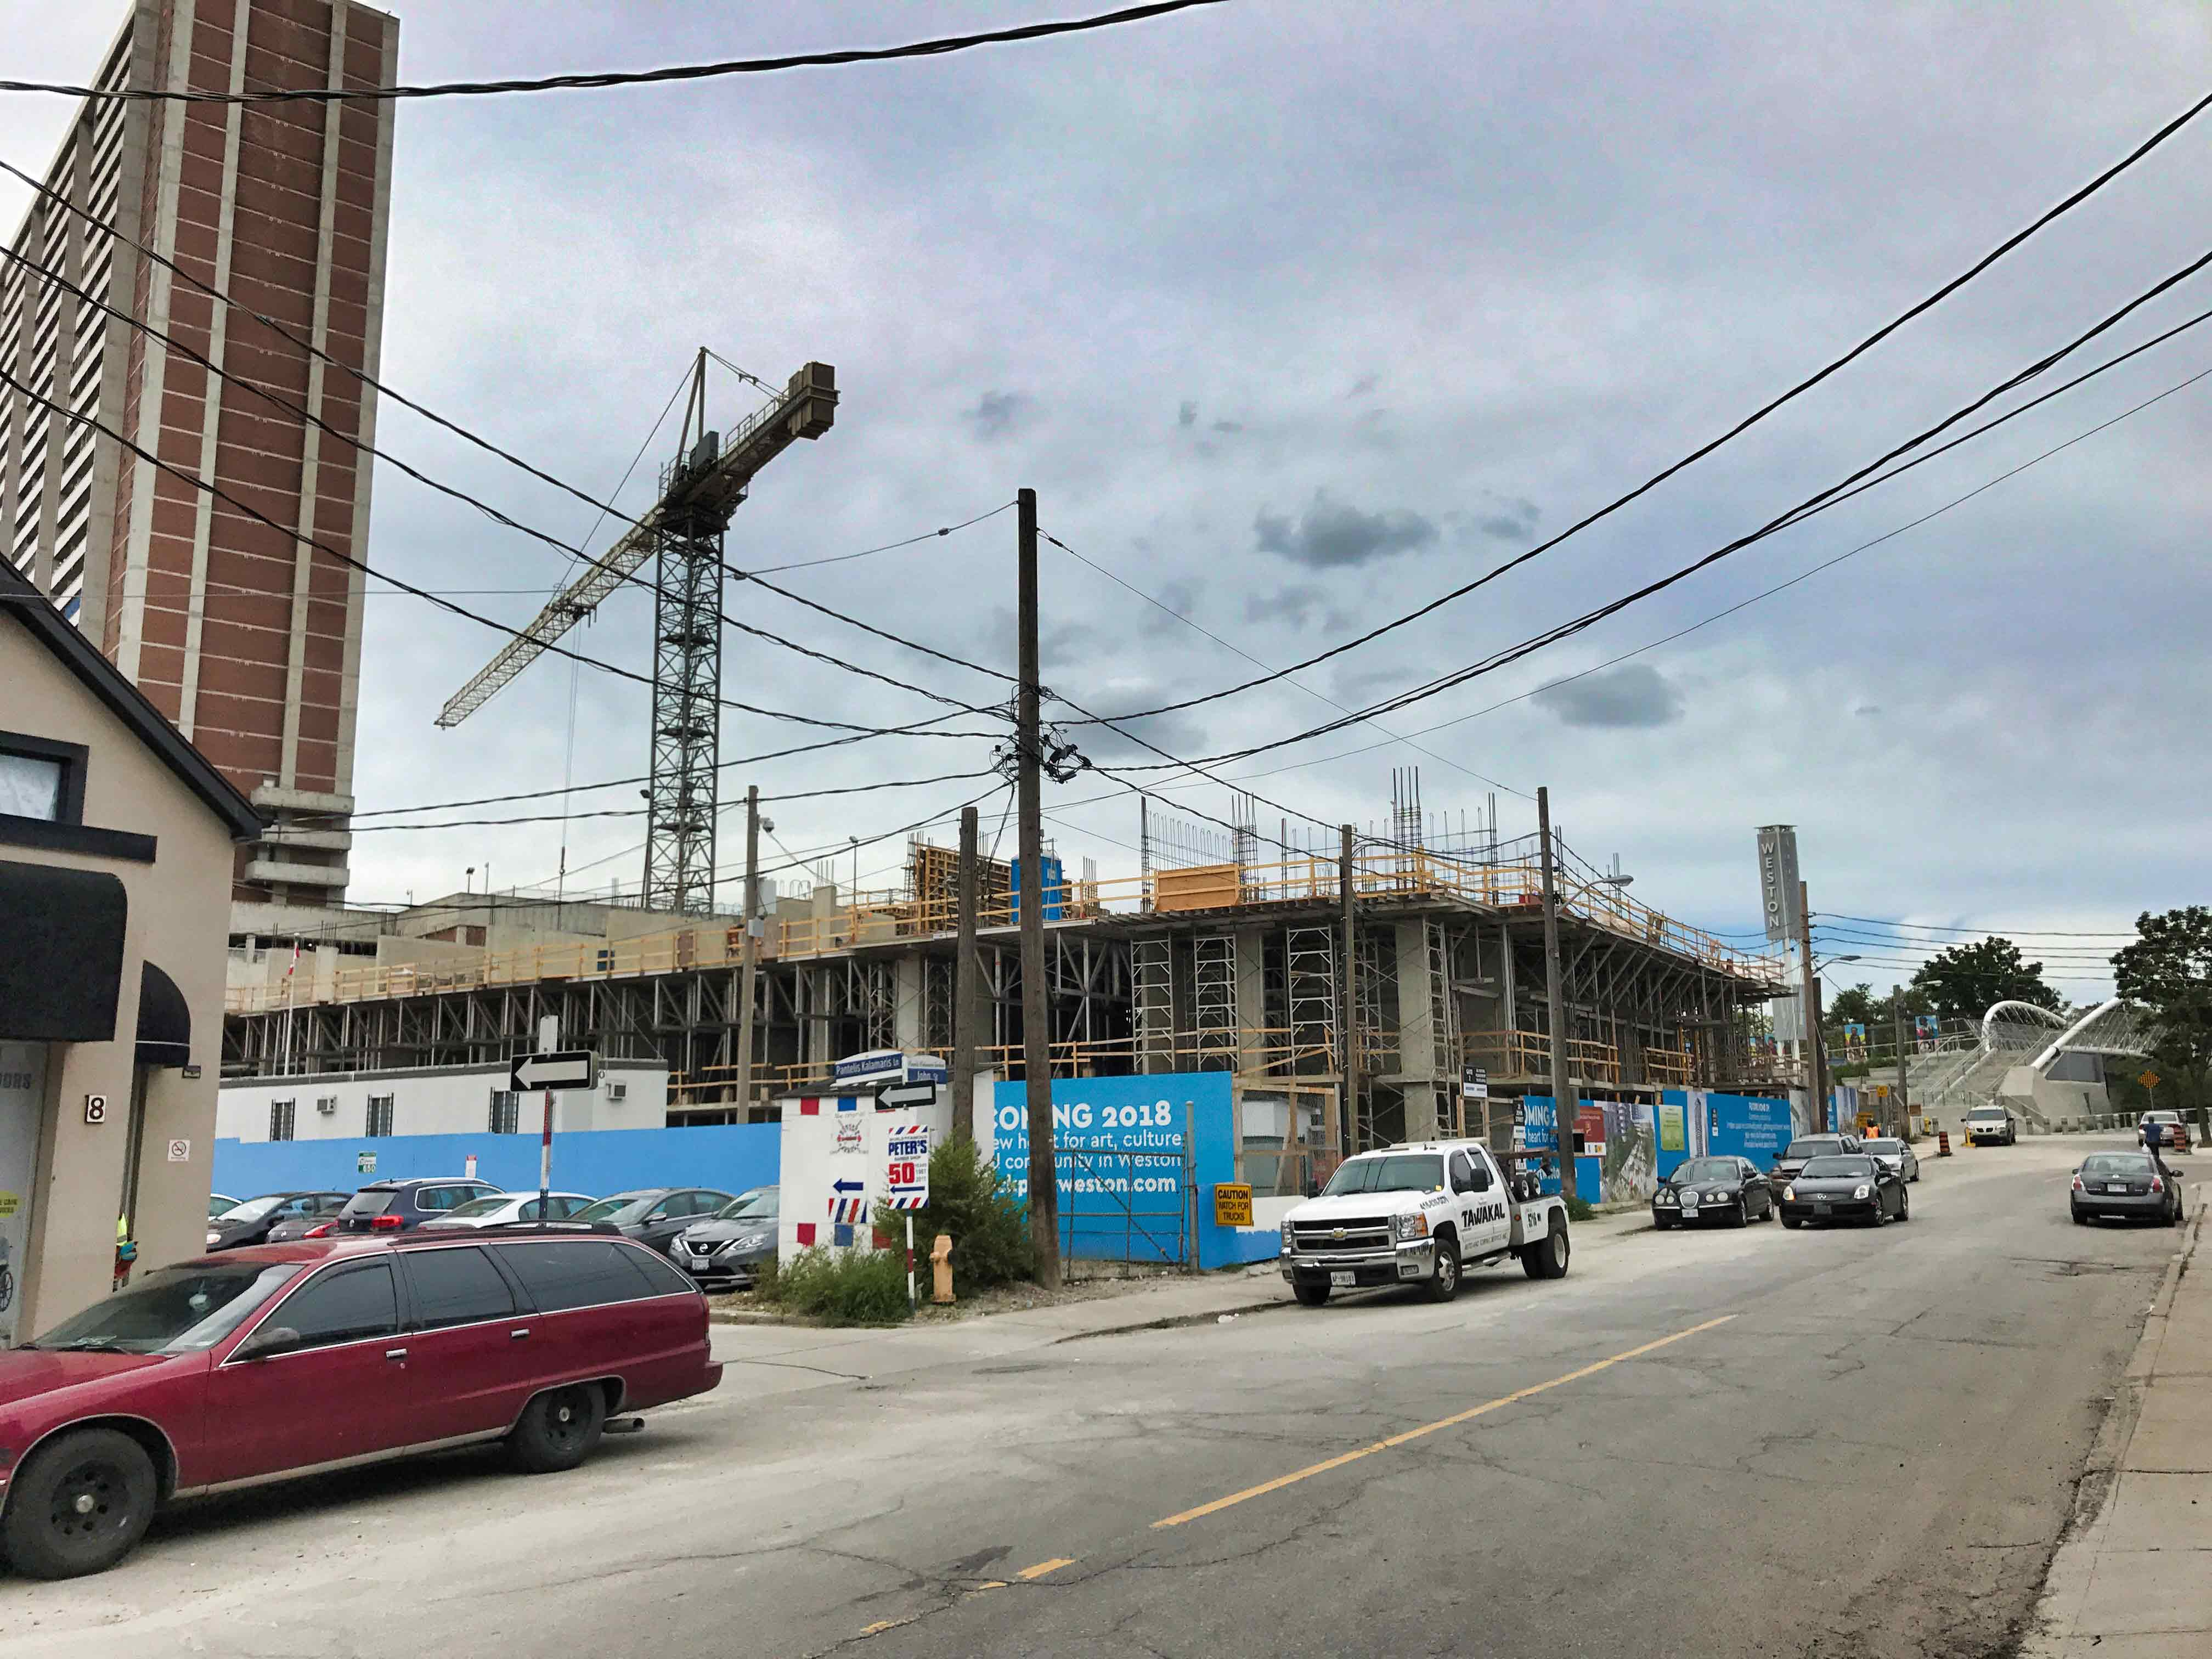 Artscape Weston Wiring Diagram The Hub Is Taking Shape Along John Street And First Couple Of Floors Complex Are In Place Pedestrian Bridge Visible On